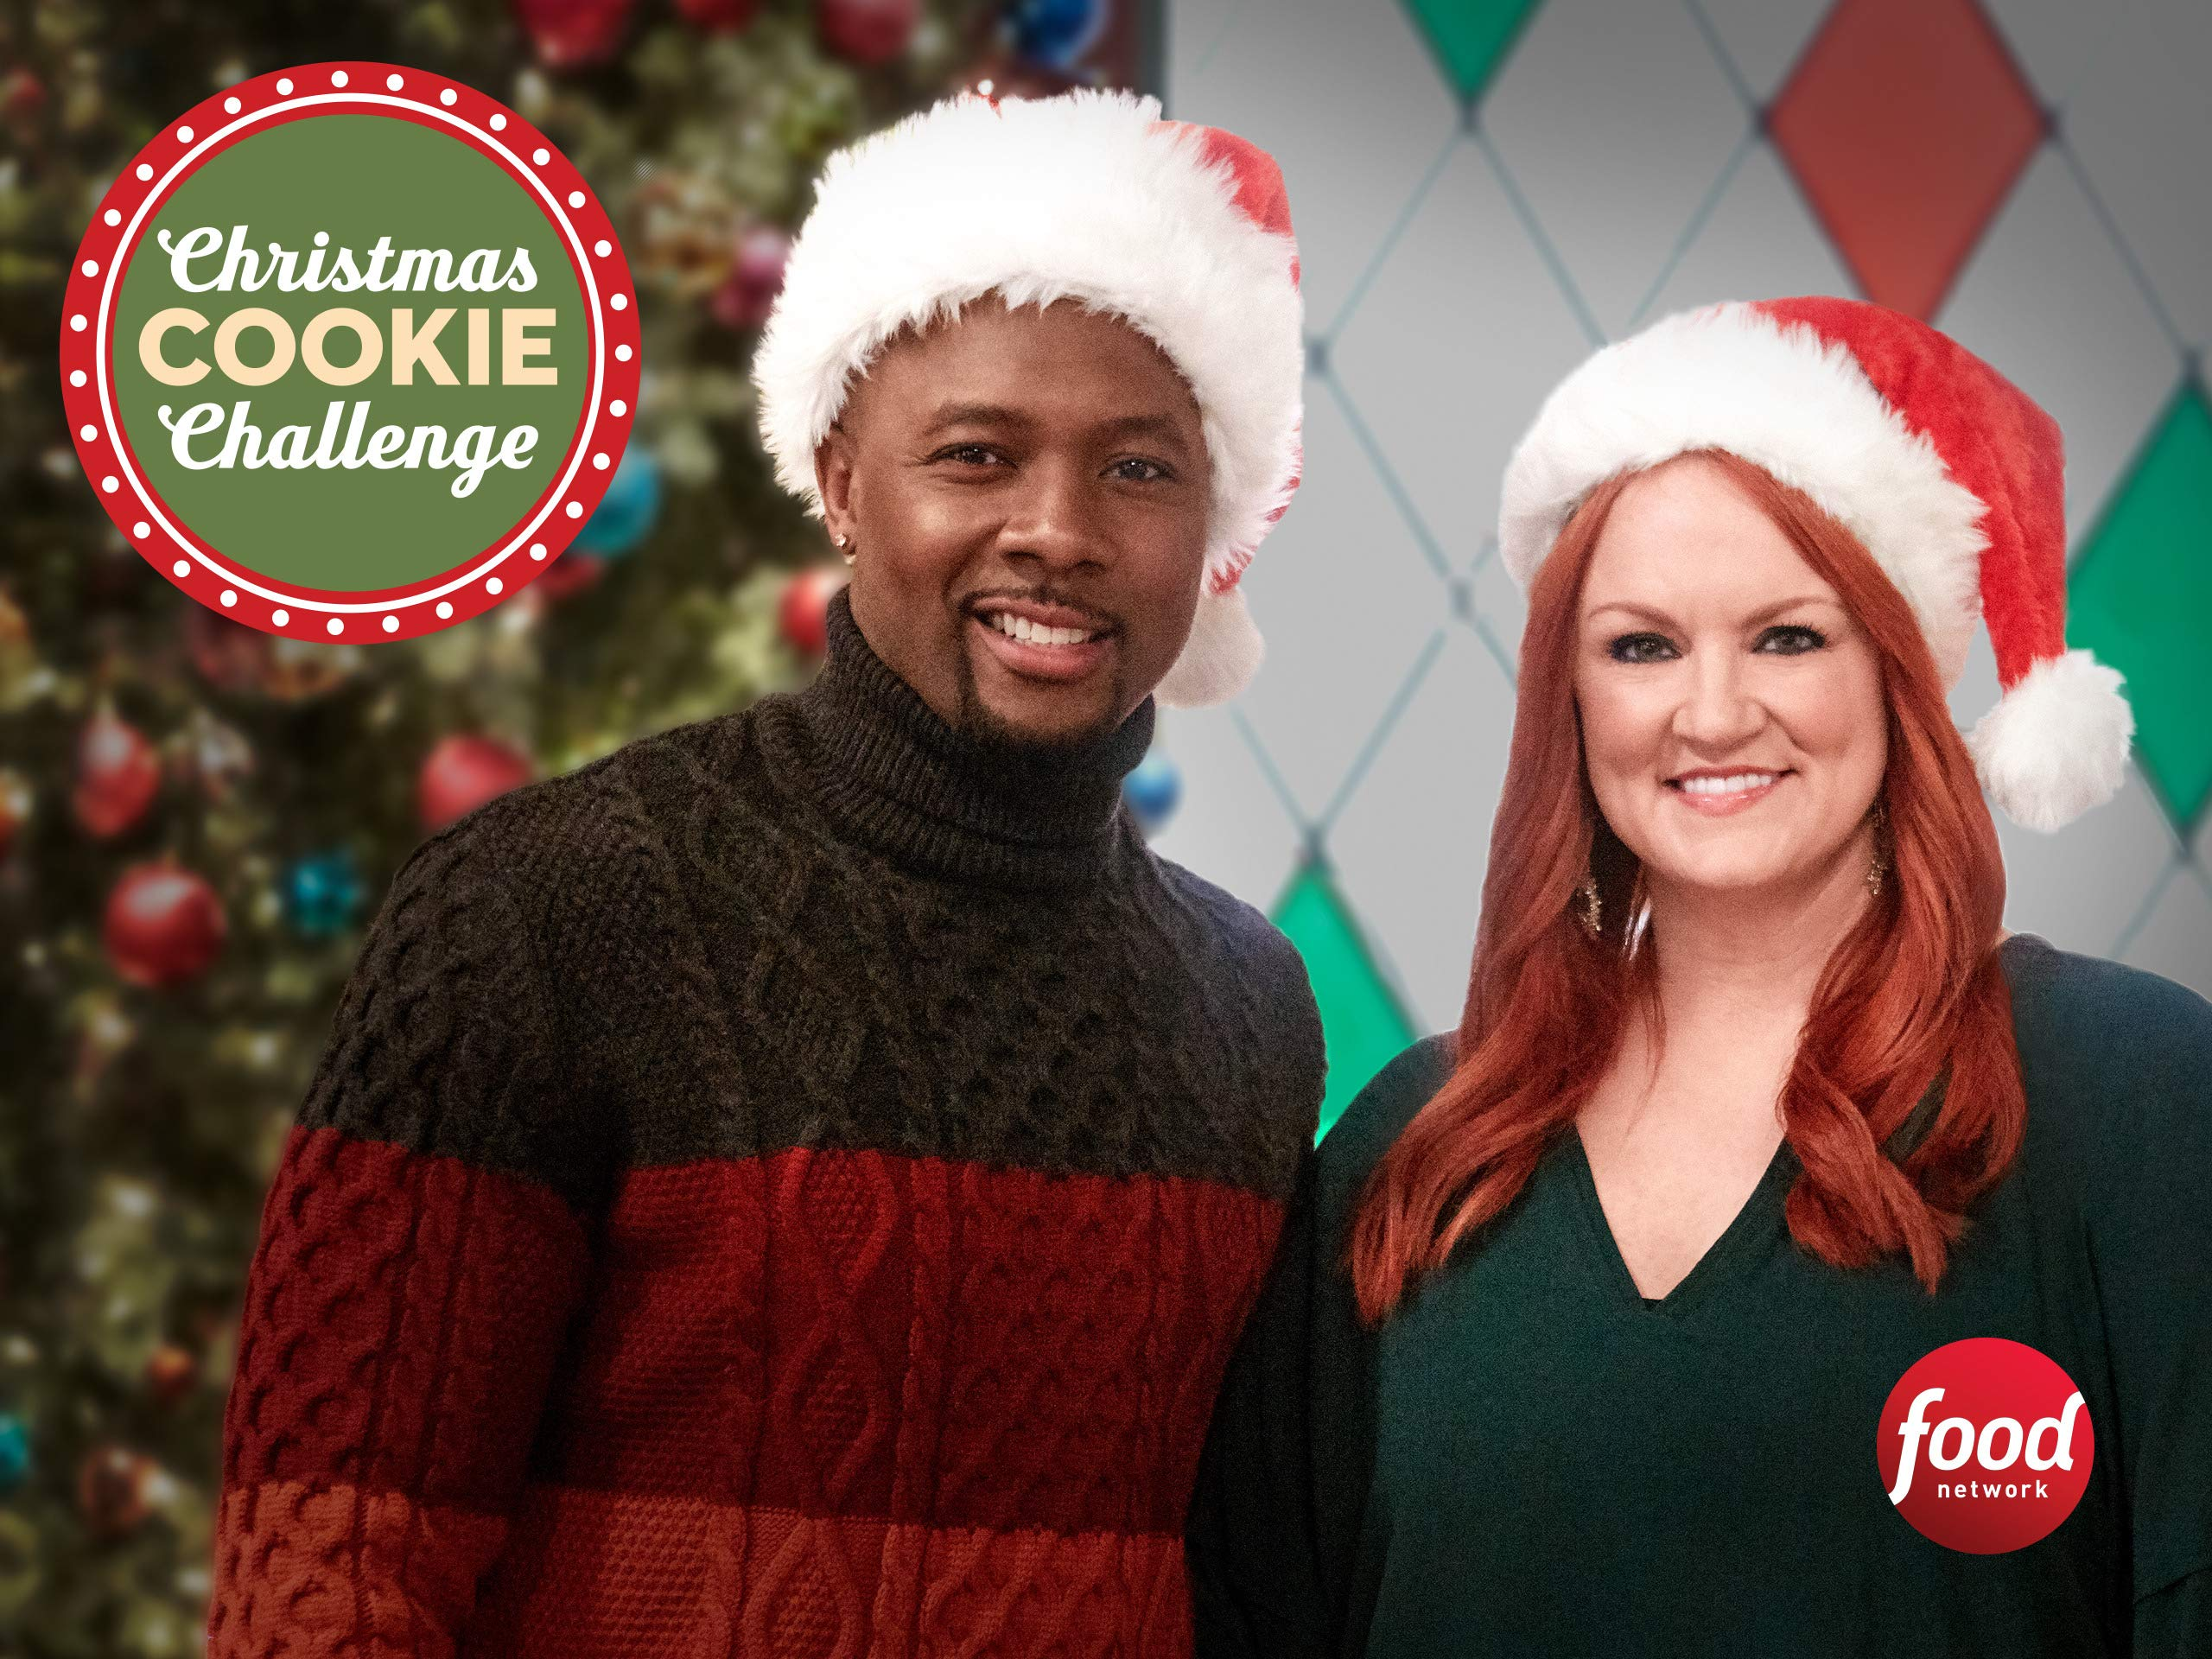 Cookie Christmas Challenge 2020 Food Network's 'Christmas Cookie Challenge' to Have a Curtailed